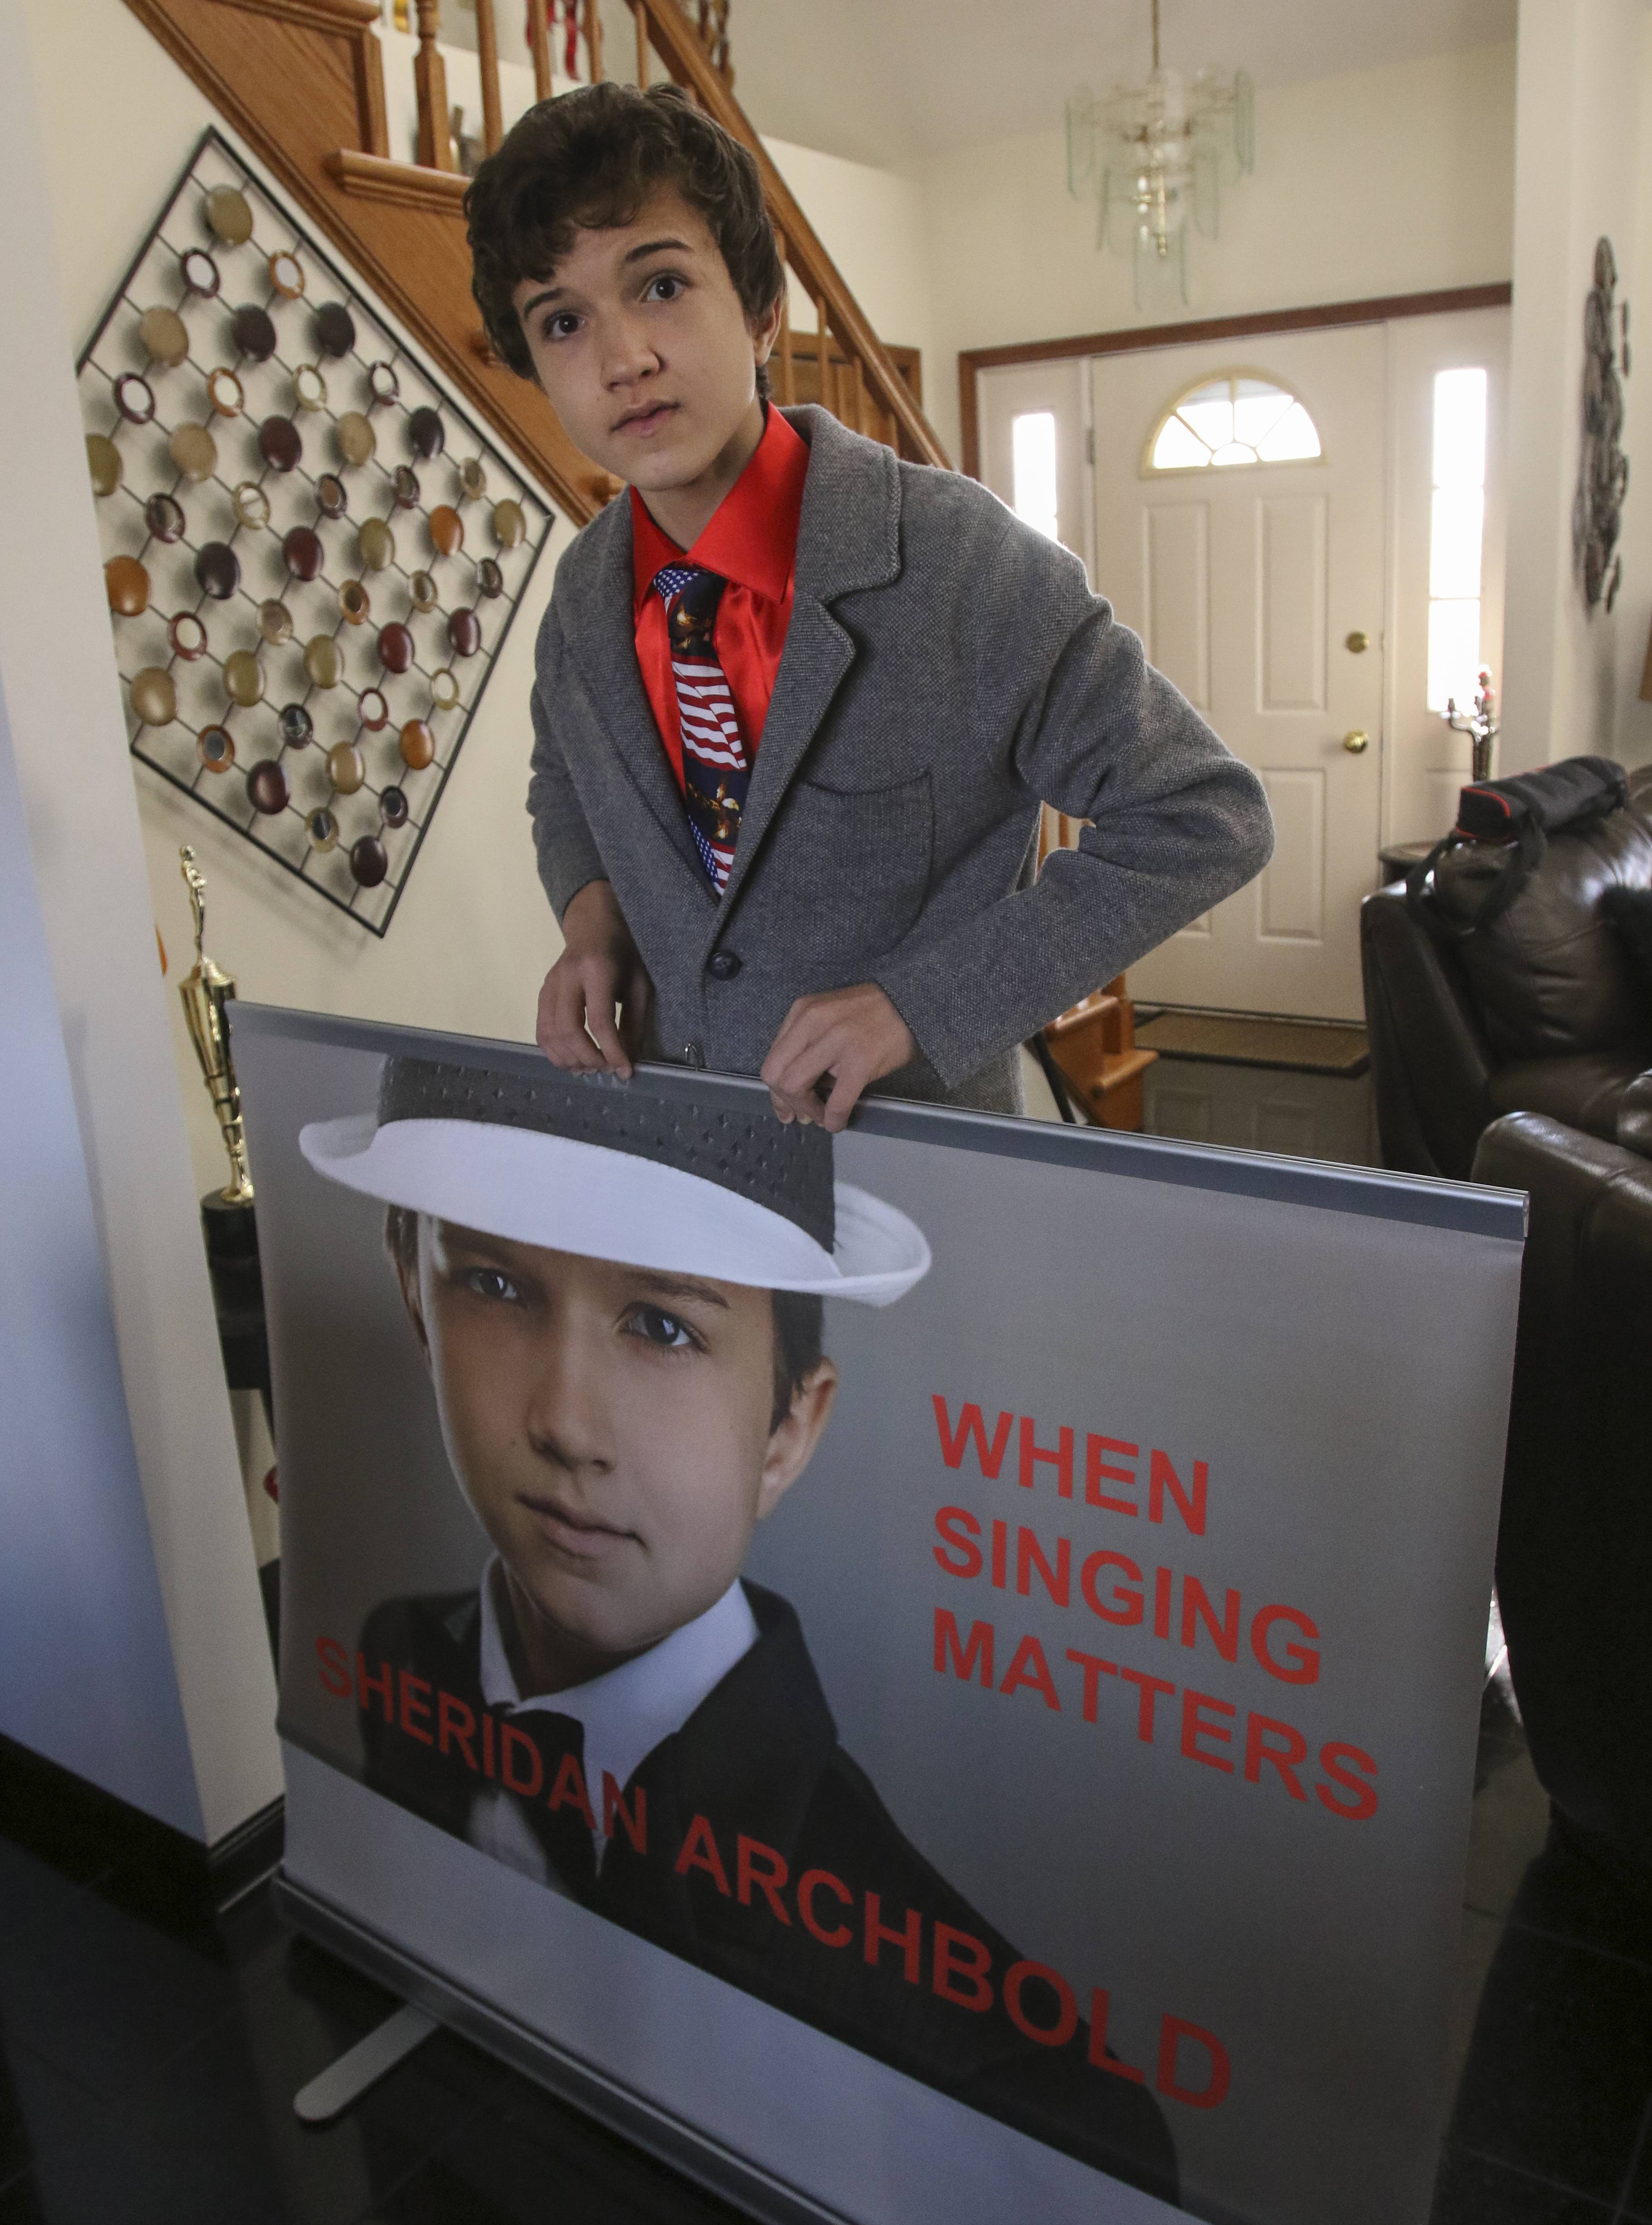 Sheridan Archbold, 14, holds a promotional poster of himself. The young opera singer performed this summer in Italy and is in talks for perform in France in 2017.